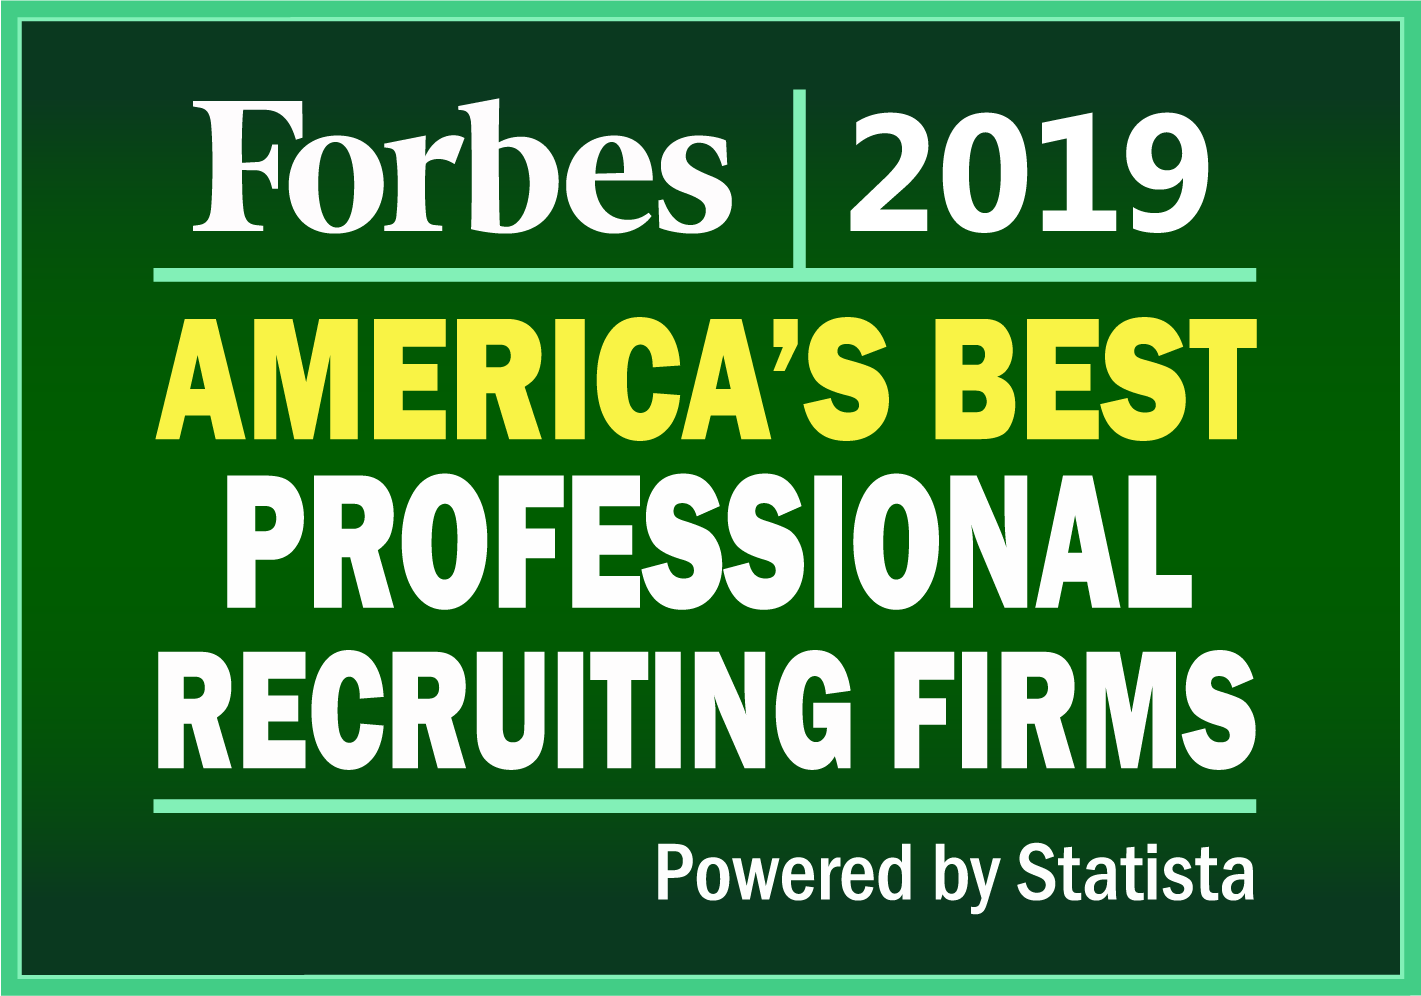 Forbes Best Professional Recruiting Firms 2019